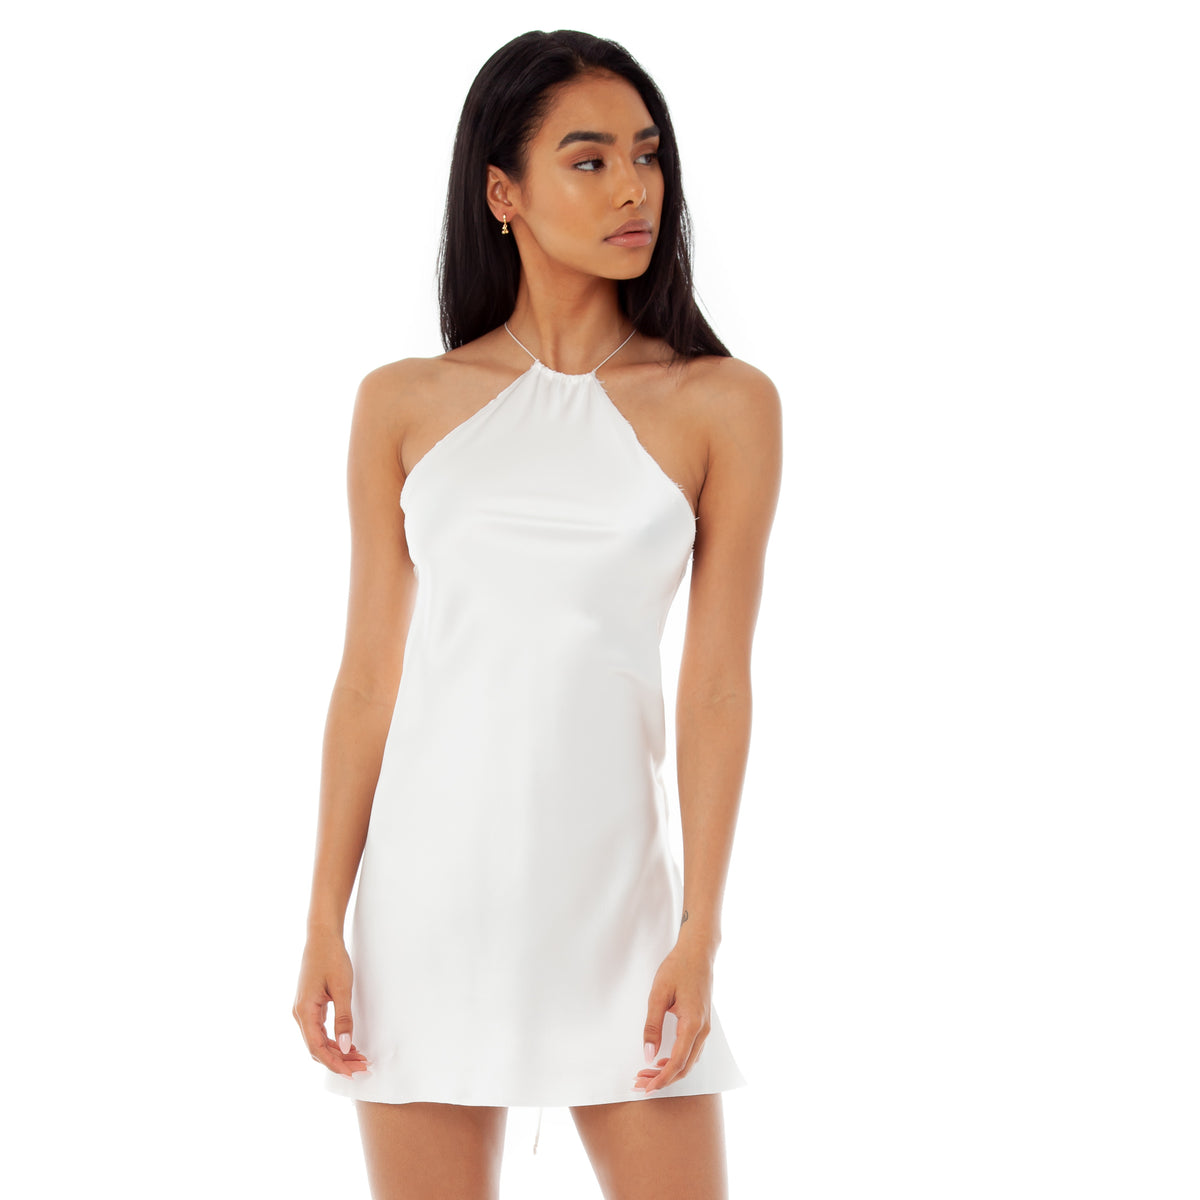 Are You Am I - Senna Dress **white